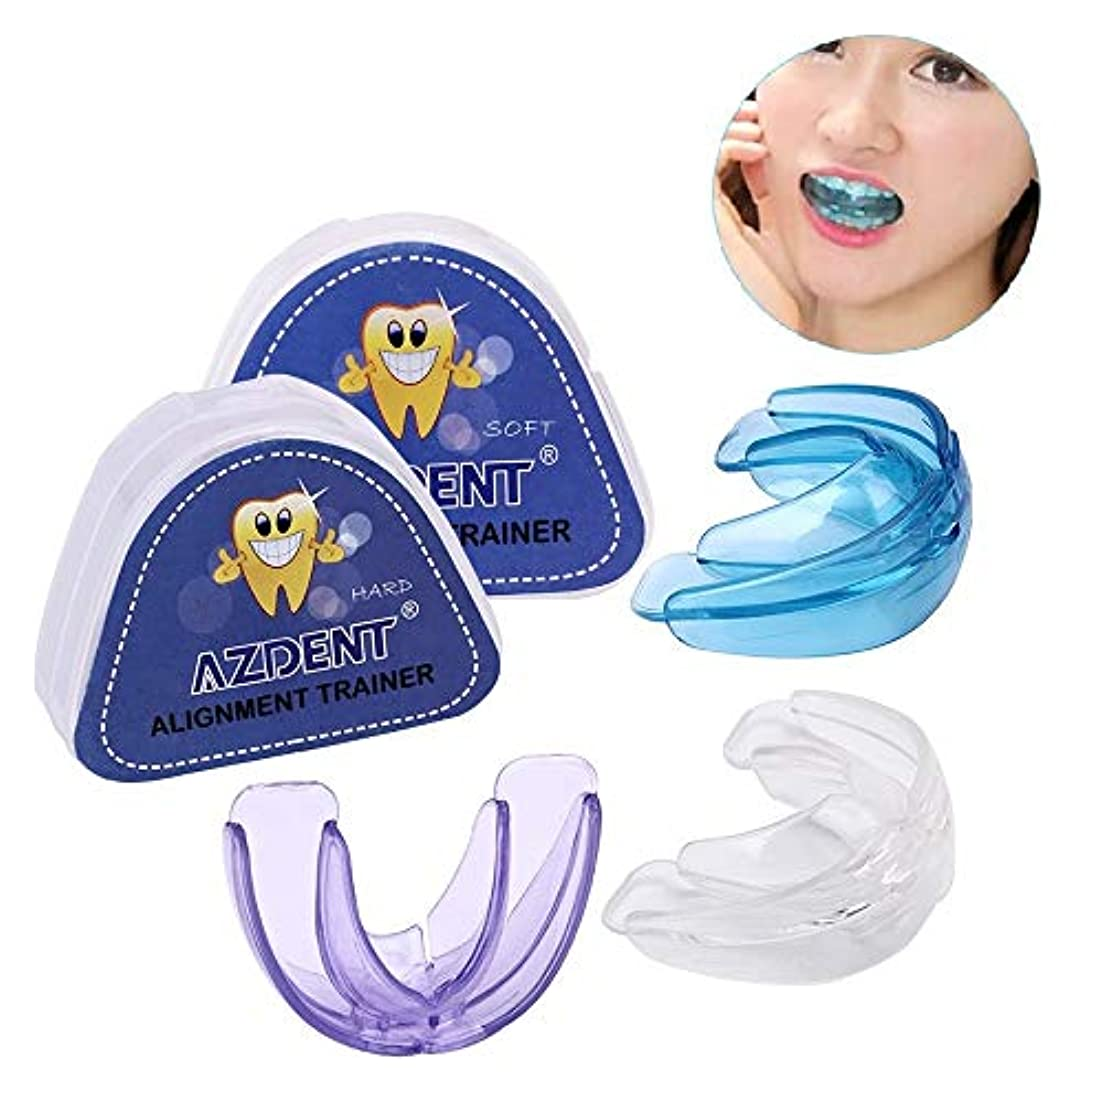 写真を撮る半球野菜1 SET(SOFT+HARD) Pro Silicone Tooth Orthodontic Dental Appliance Trainer Alignment Braces For Teeth Straight Alignment...